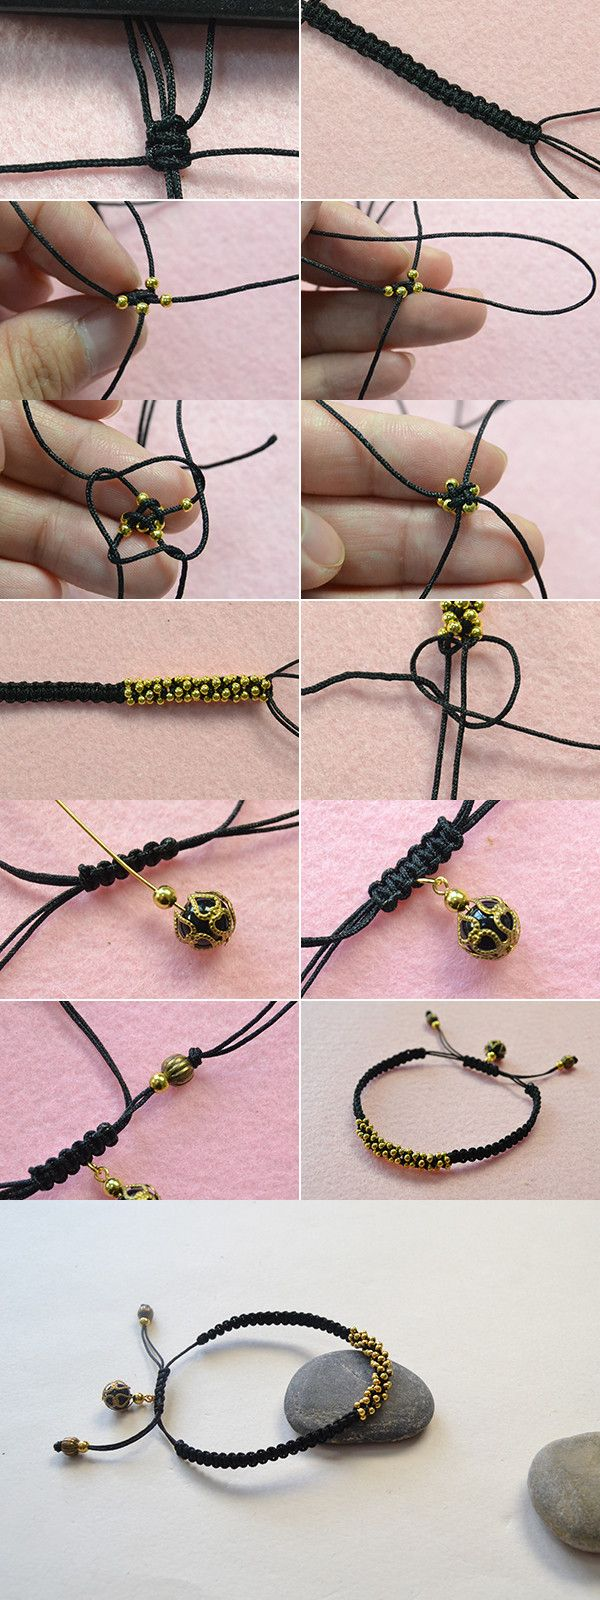 Like this braided bracelet? LC.Pandahall.com will publish the tutorial soon. #pandahall